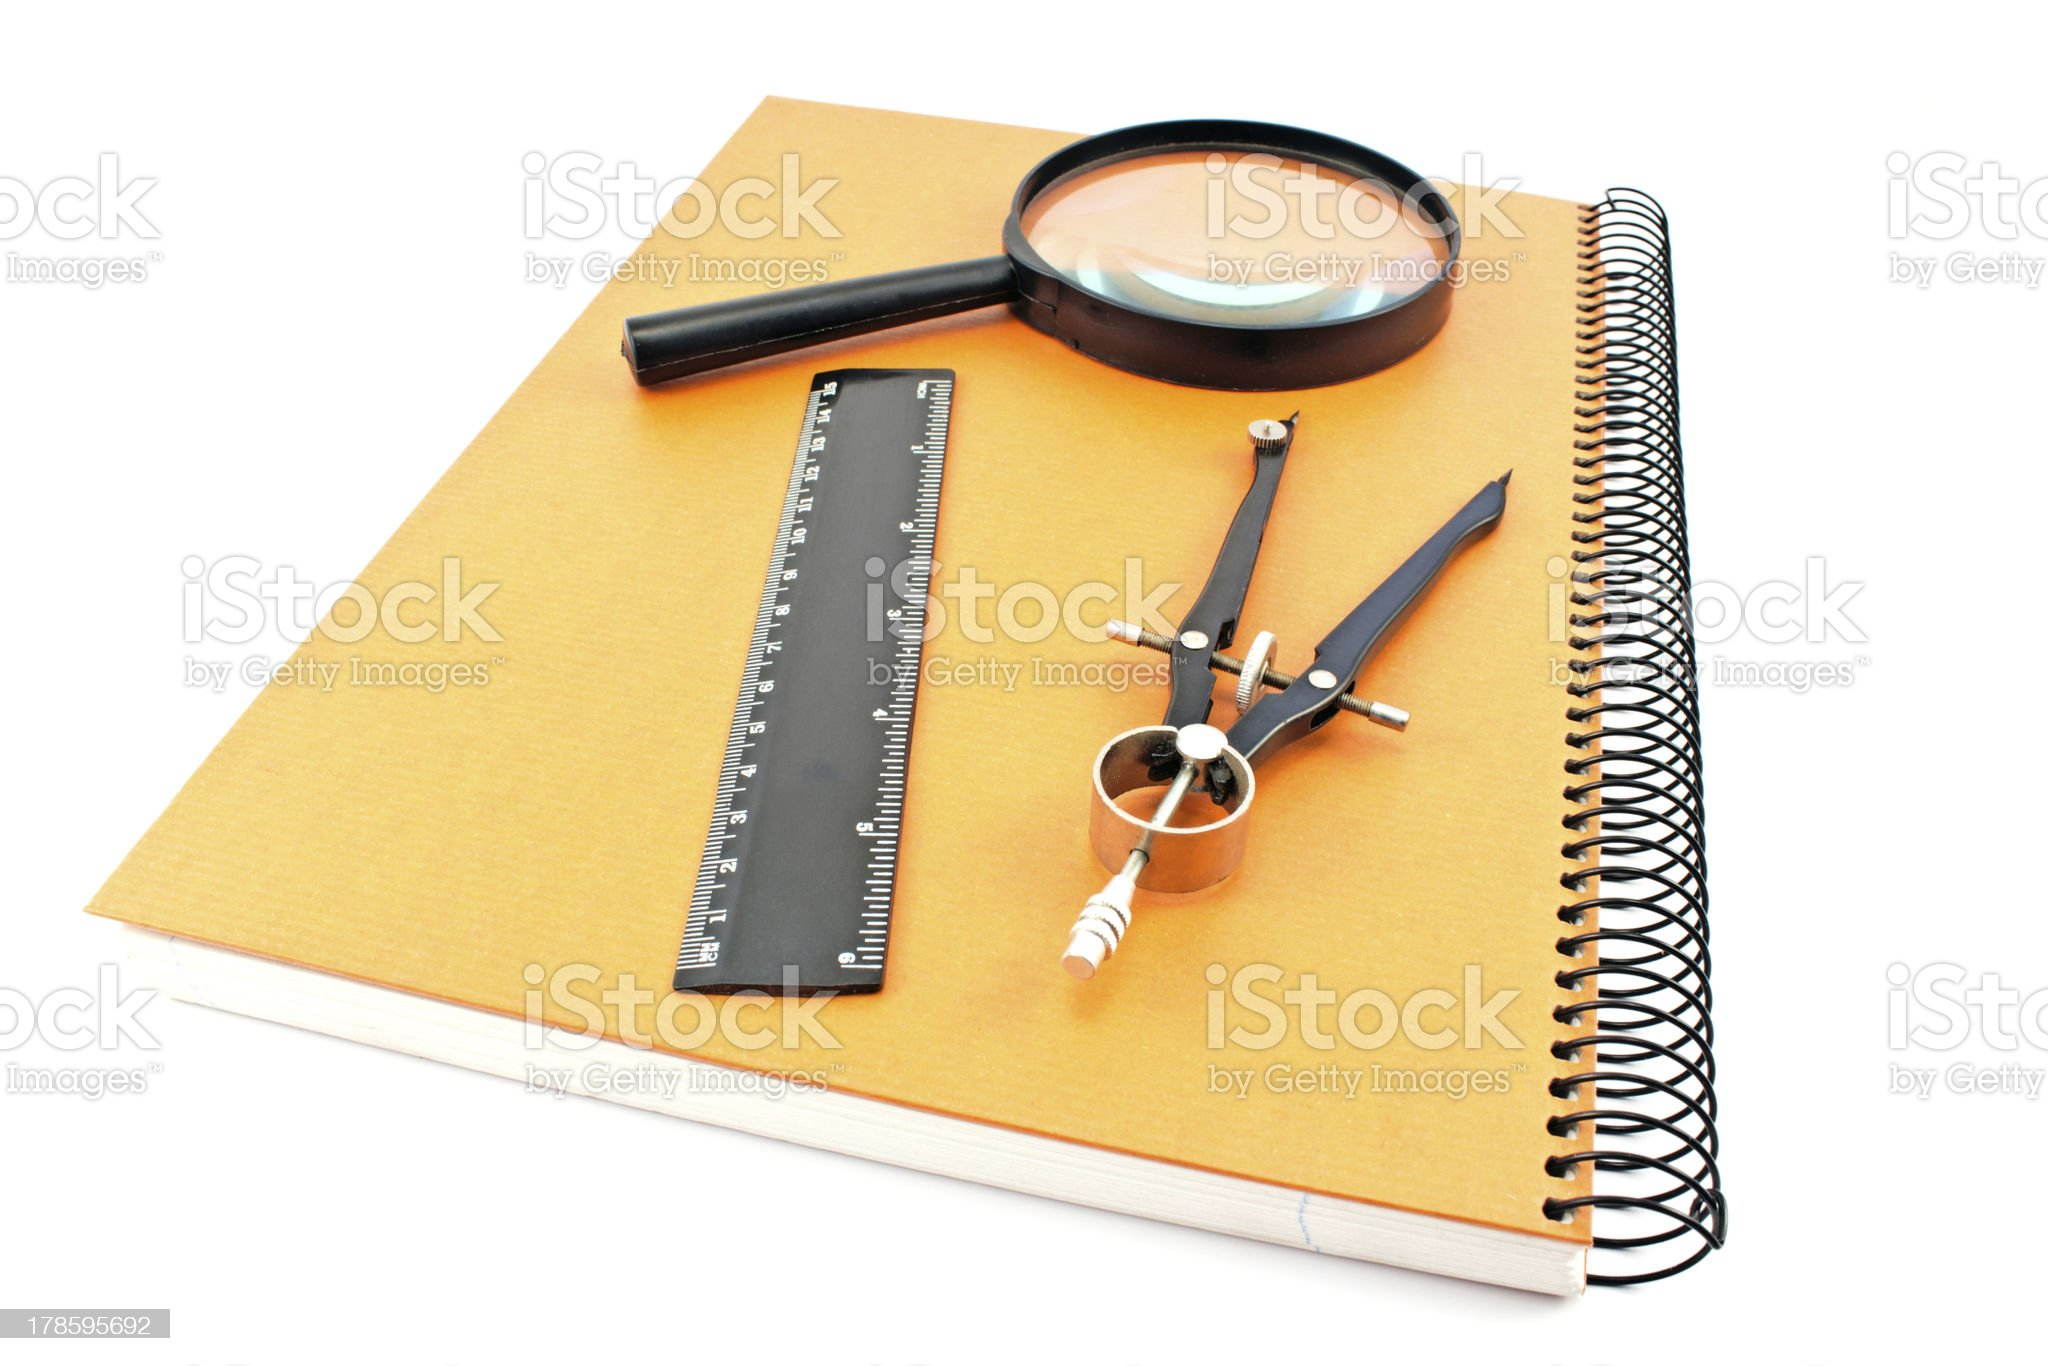 Notebook with drawing compass, ruler and magnifier royalty-free stock photo